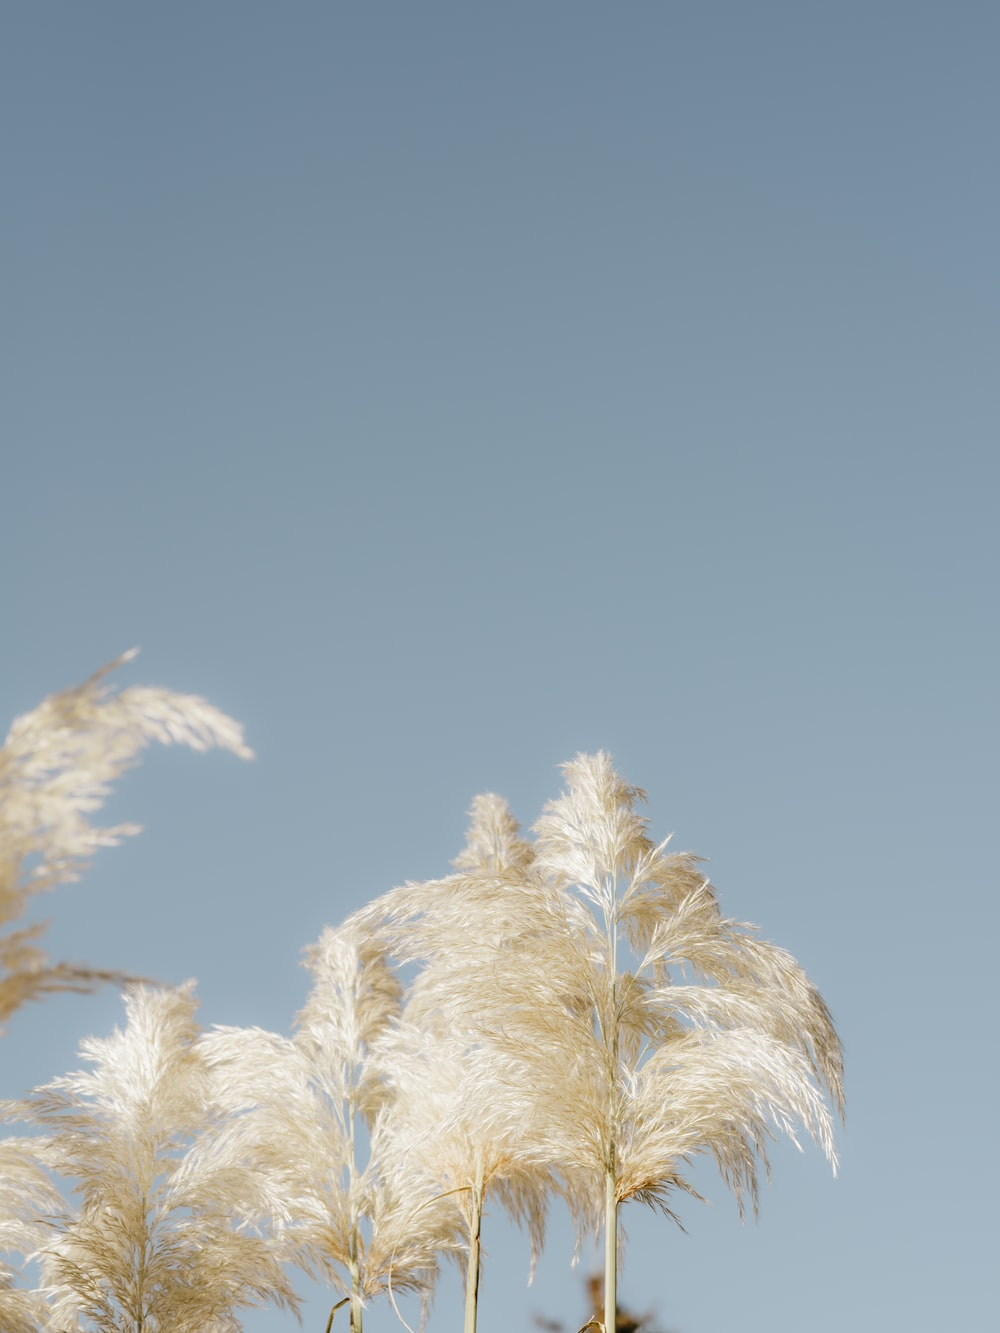 white and brown plant under blue sky during daytime